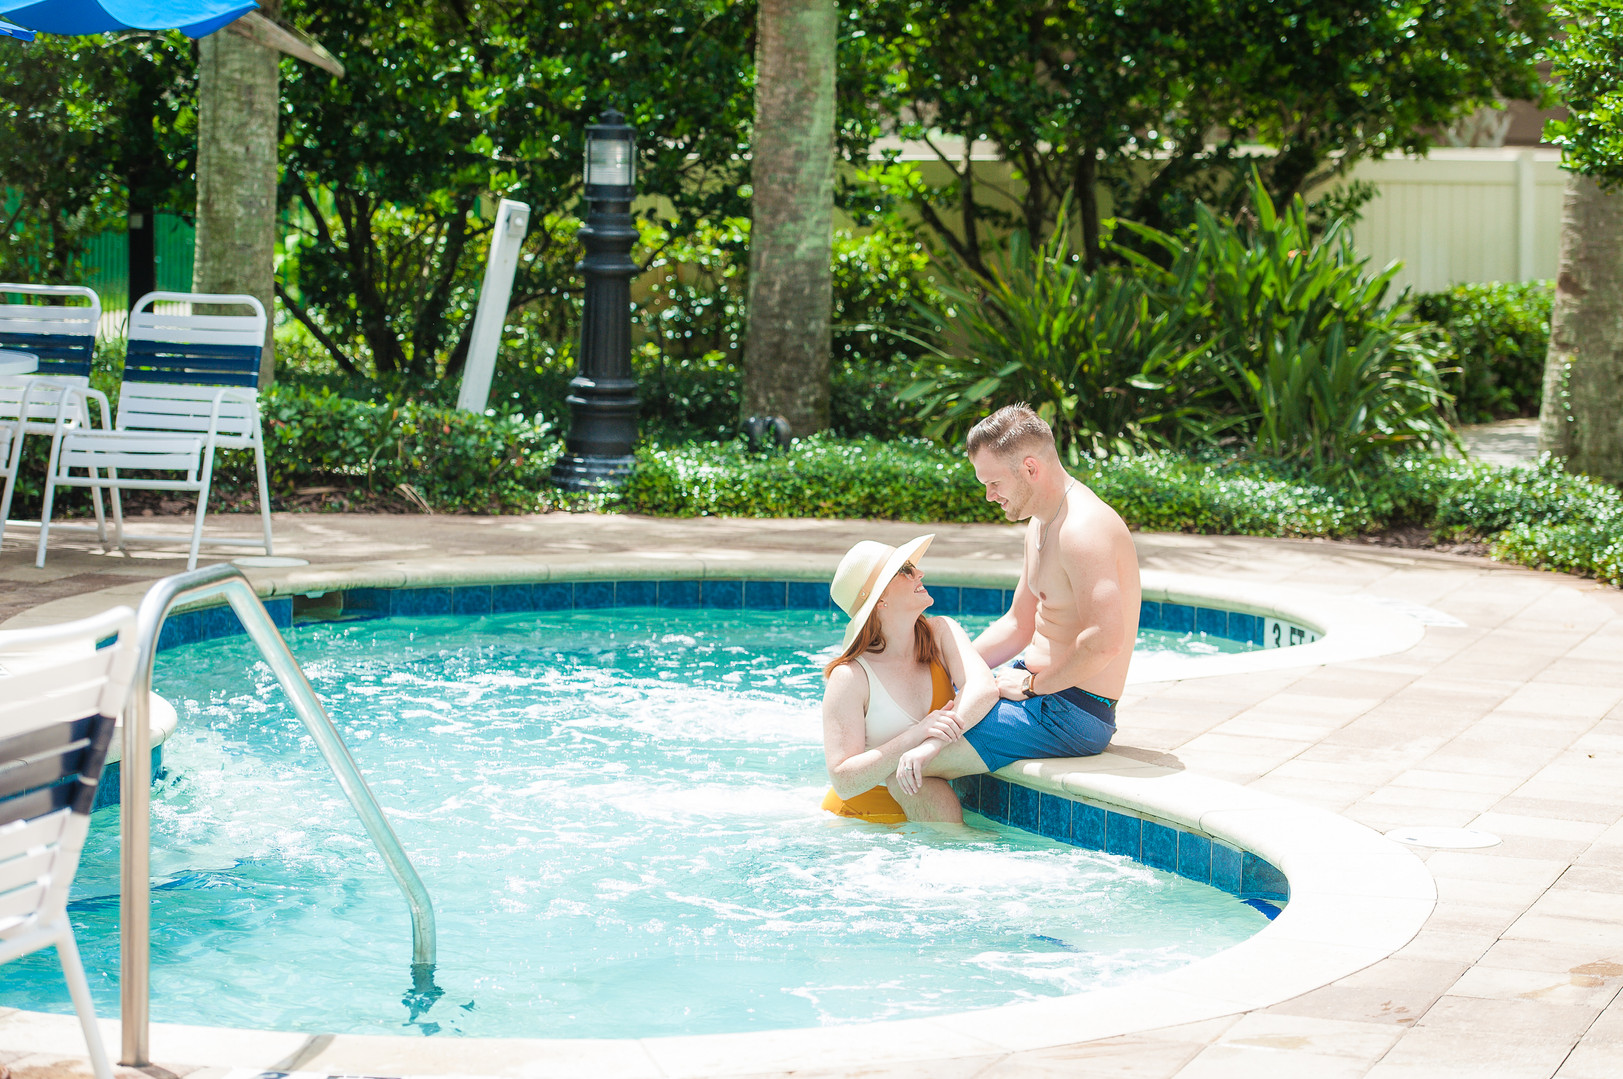 Our Jacuzzi Hot Tub Always Sets The Mood ;)